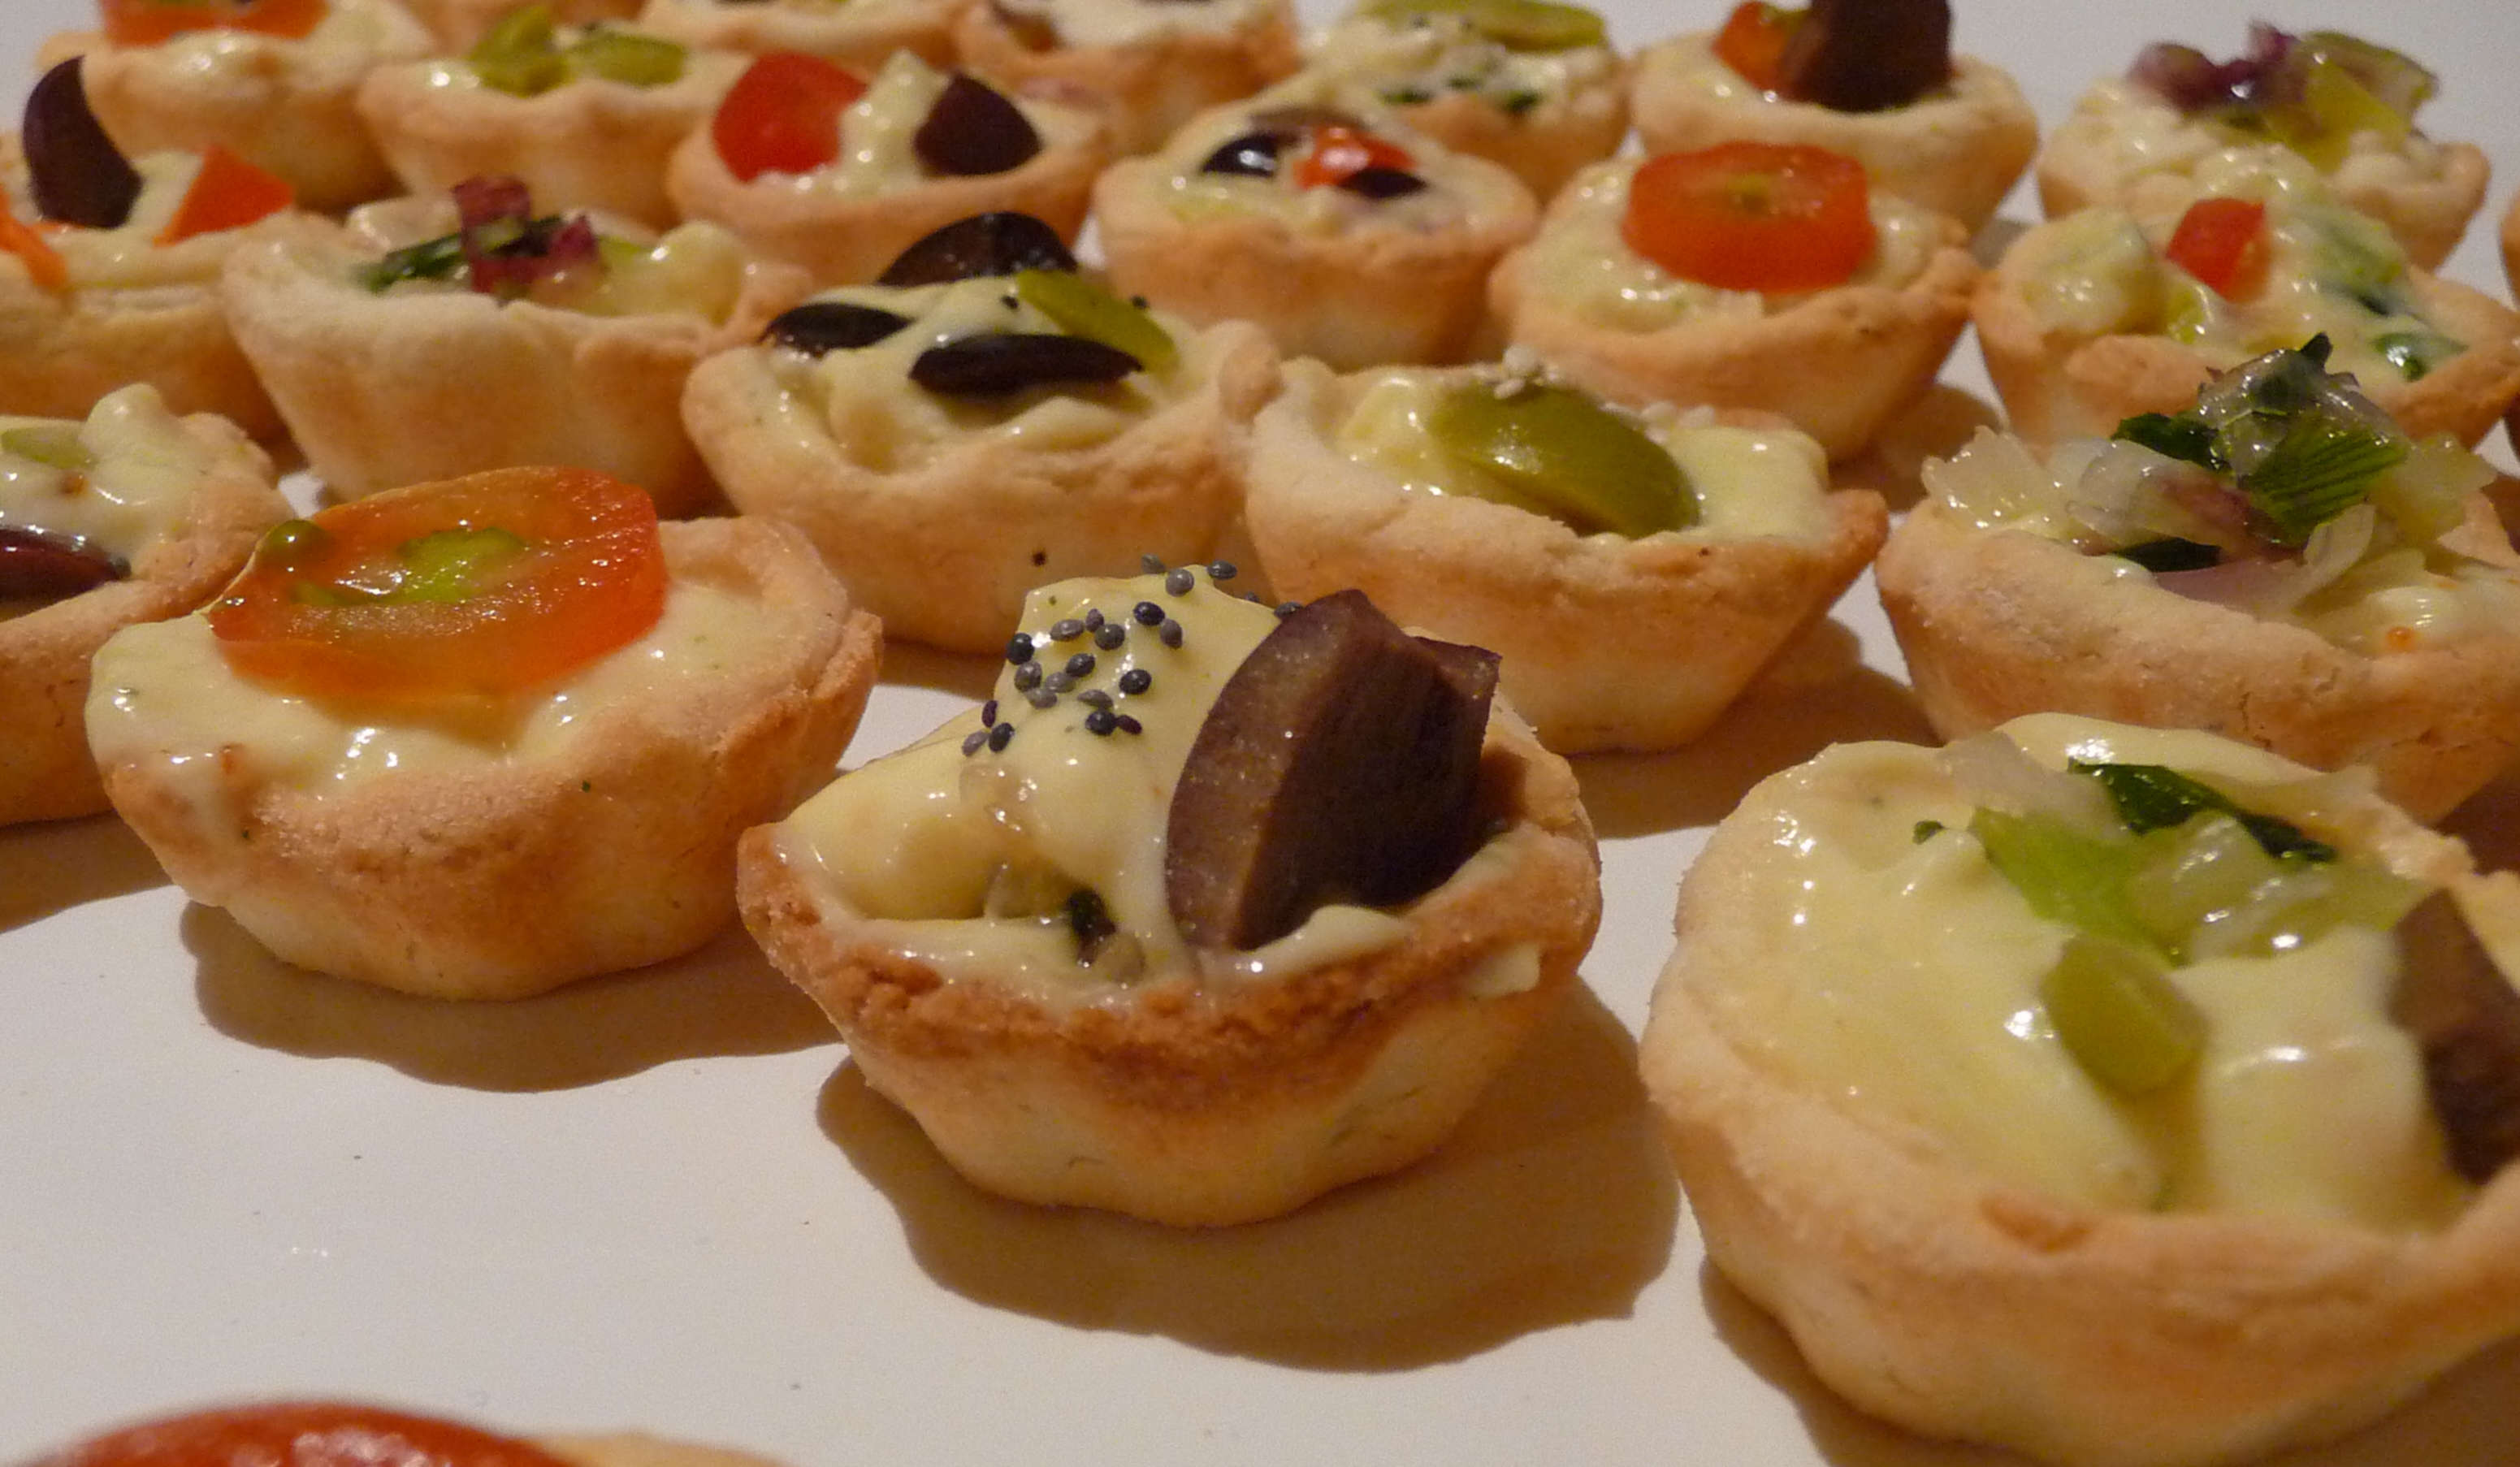 Wedding Canapes - Wikimedia Commons - Kalificado